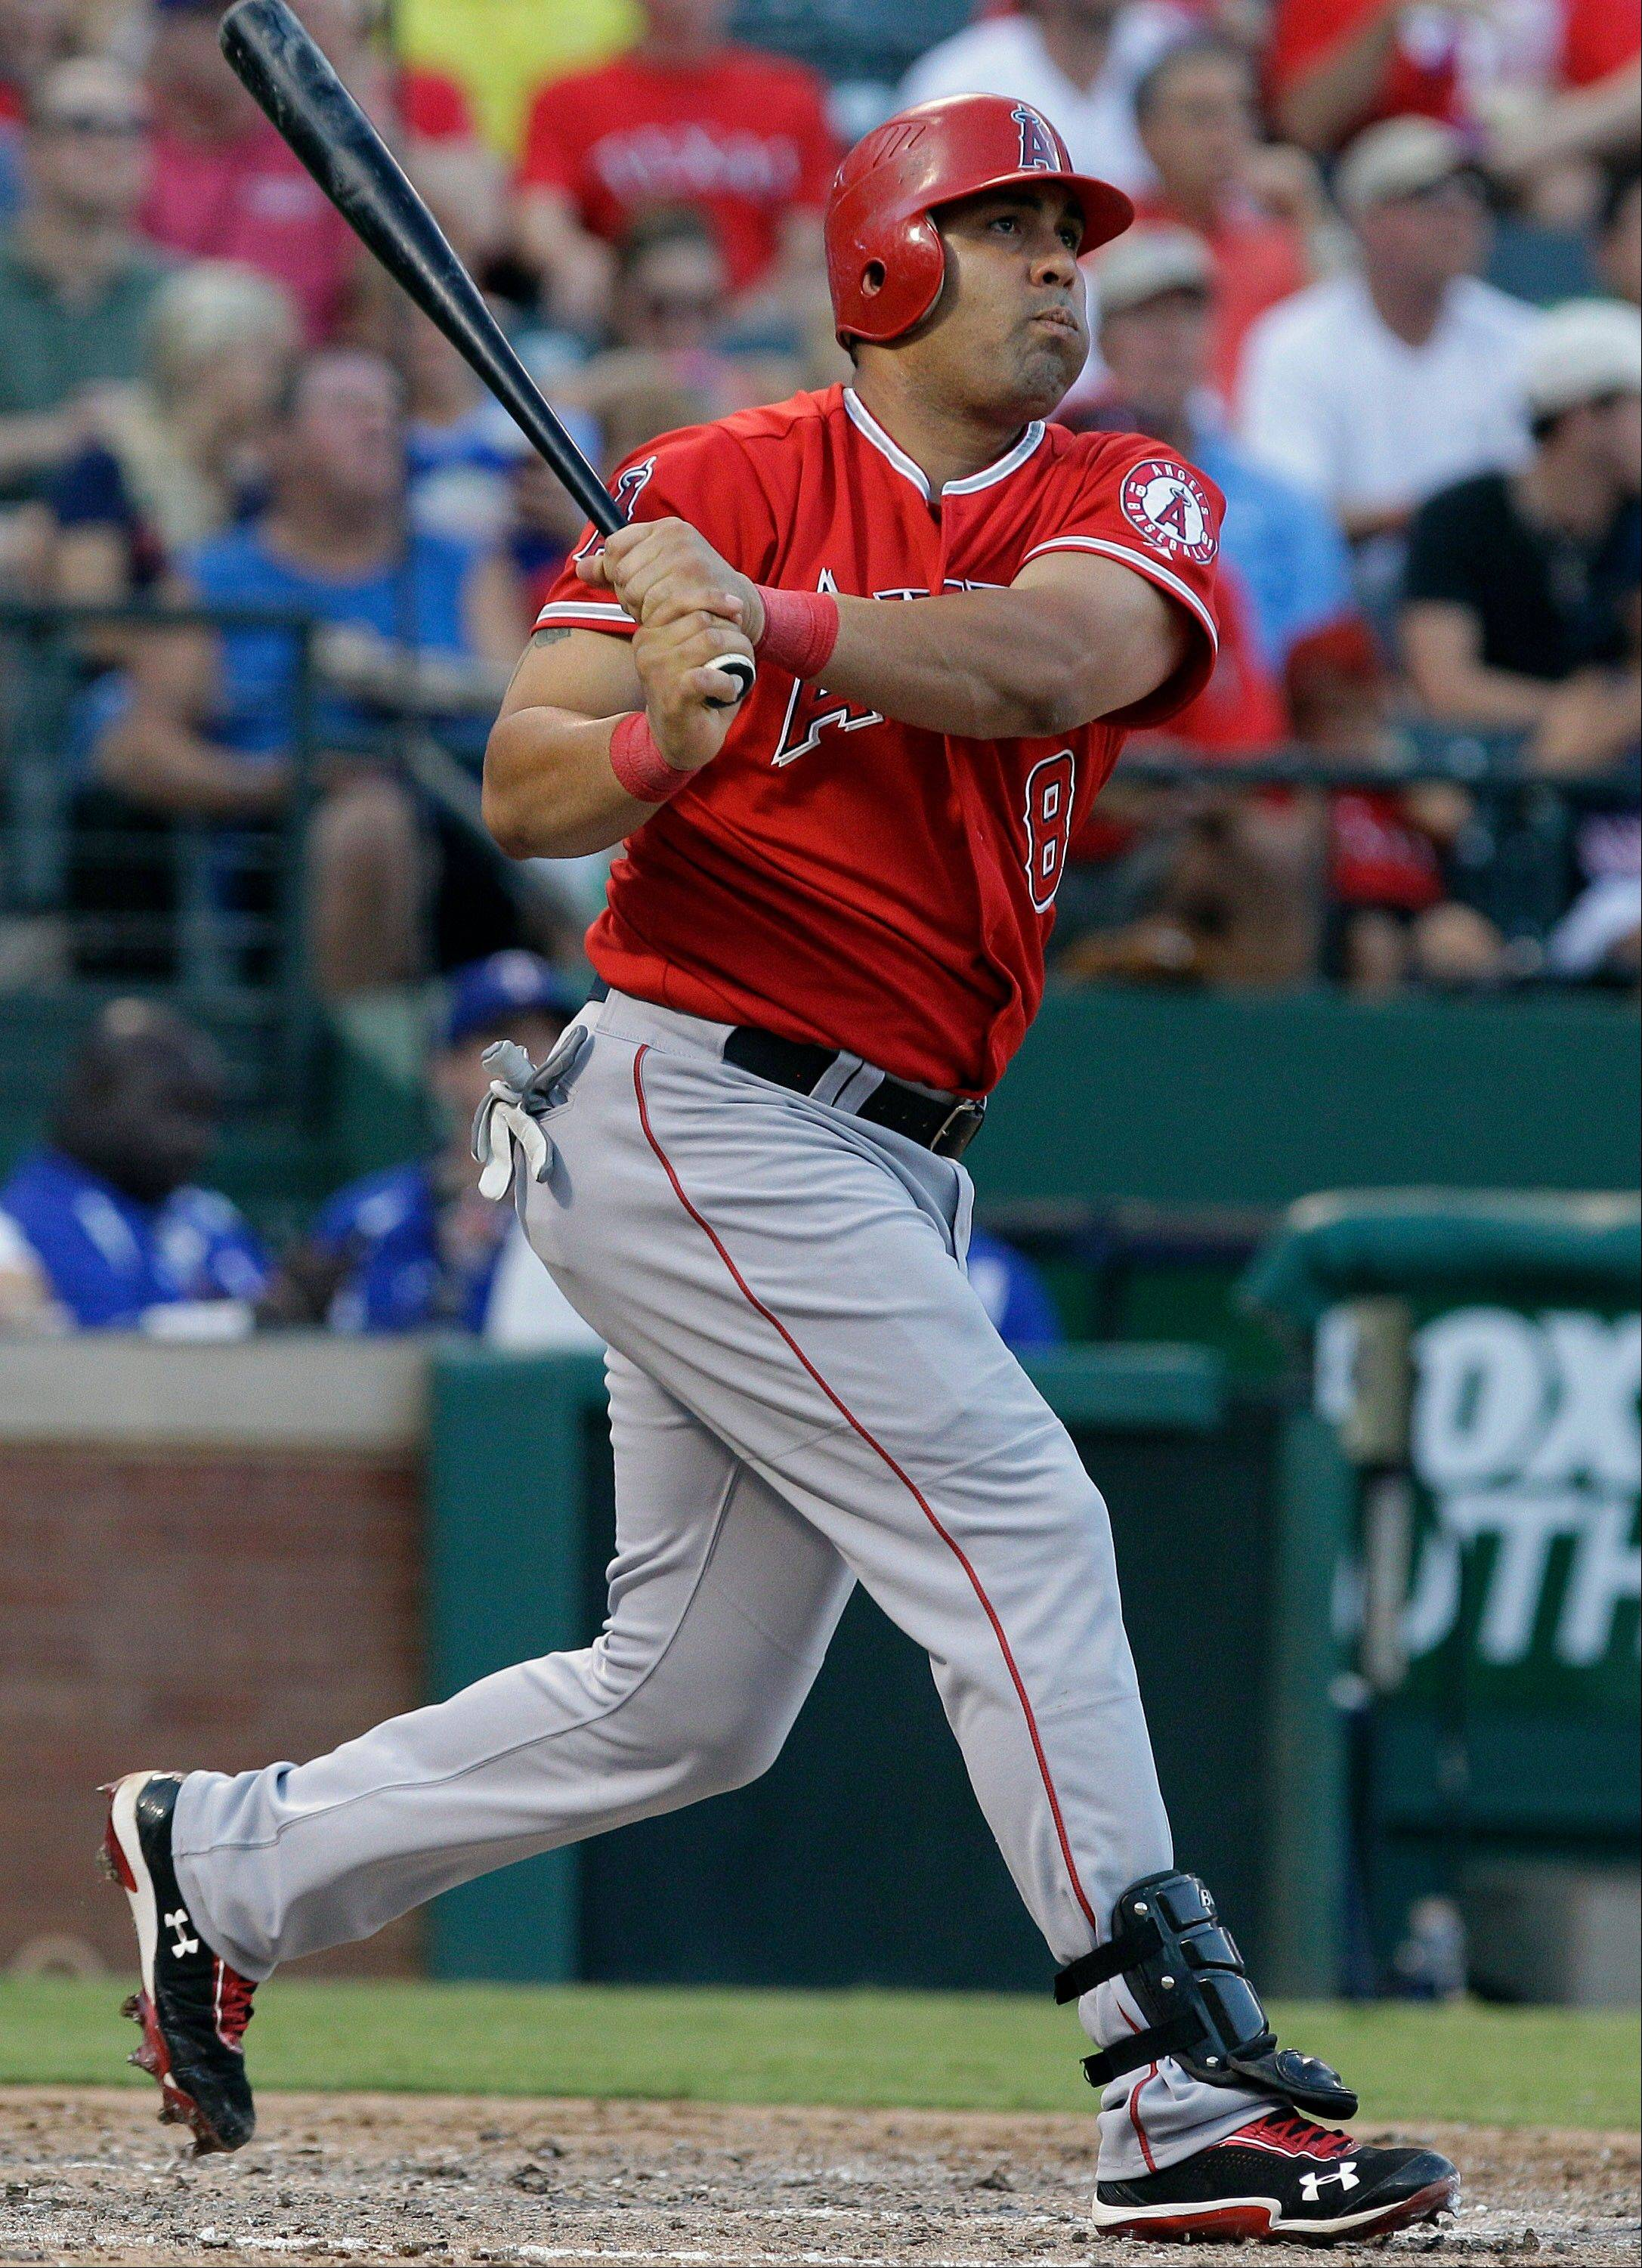 Los Angeles Angels designated hitter Kendrys Morales, batting as a lefty, watches his two-run homer fly during the sixth inning Monday in Arlington, Texas.